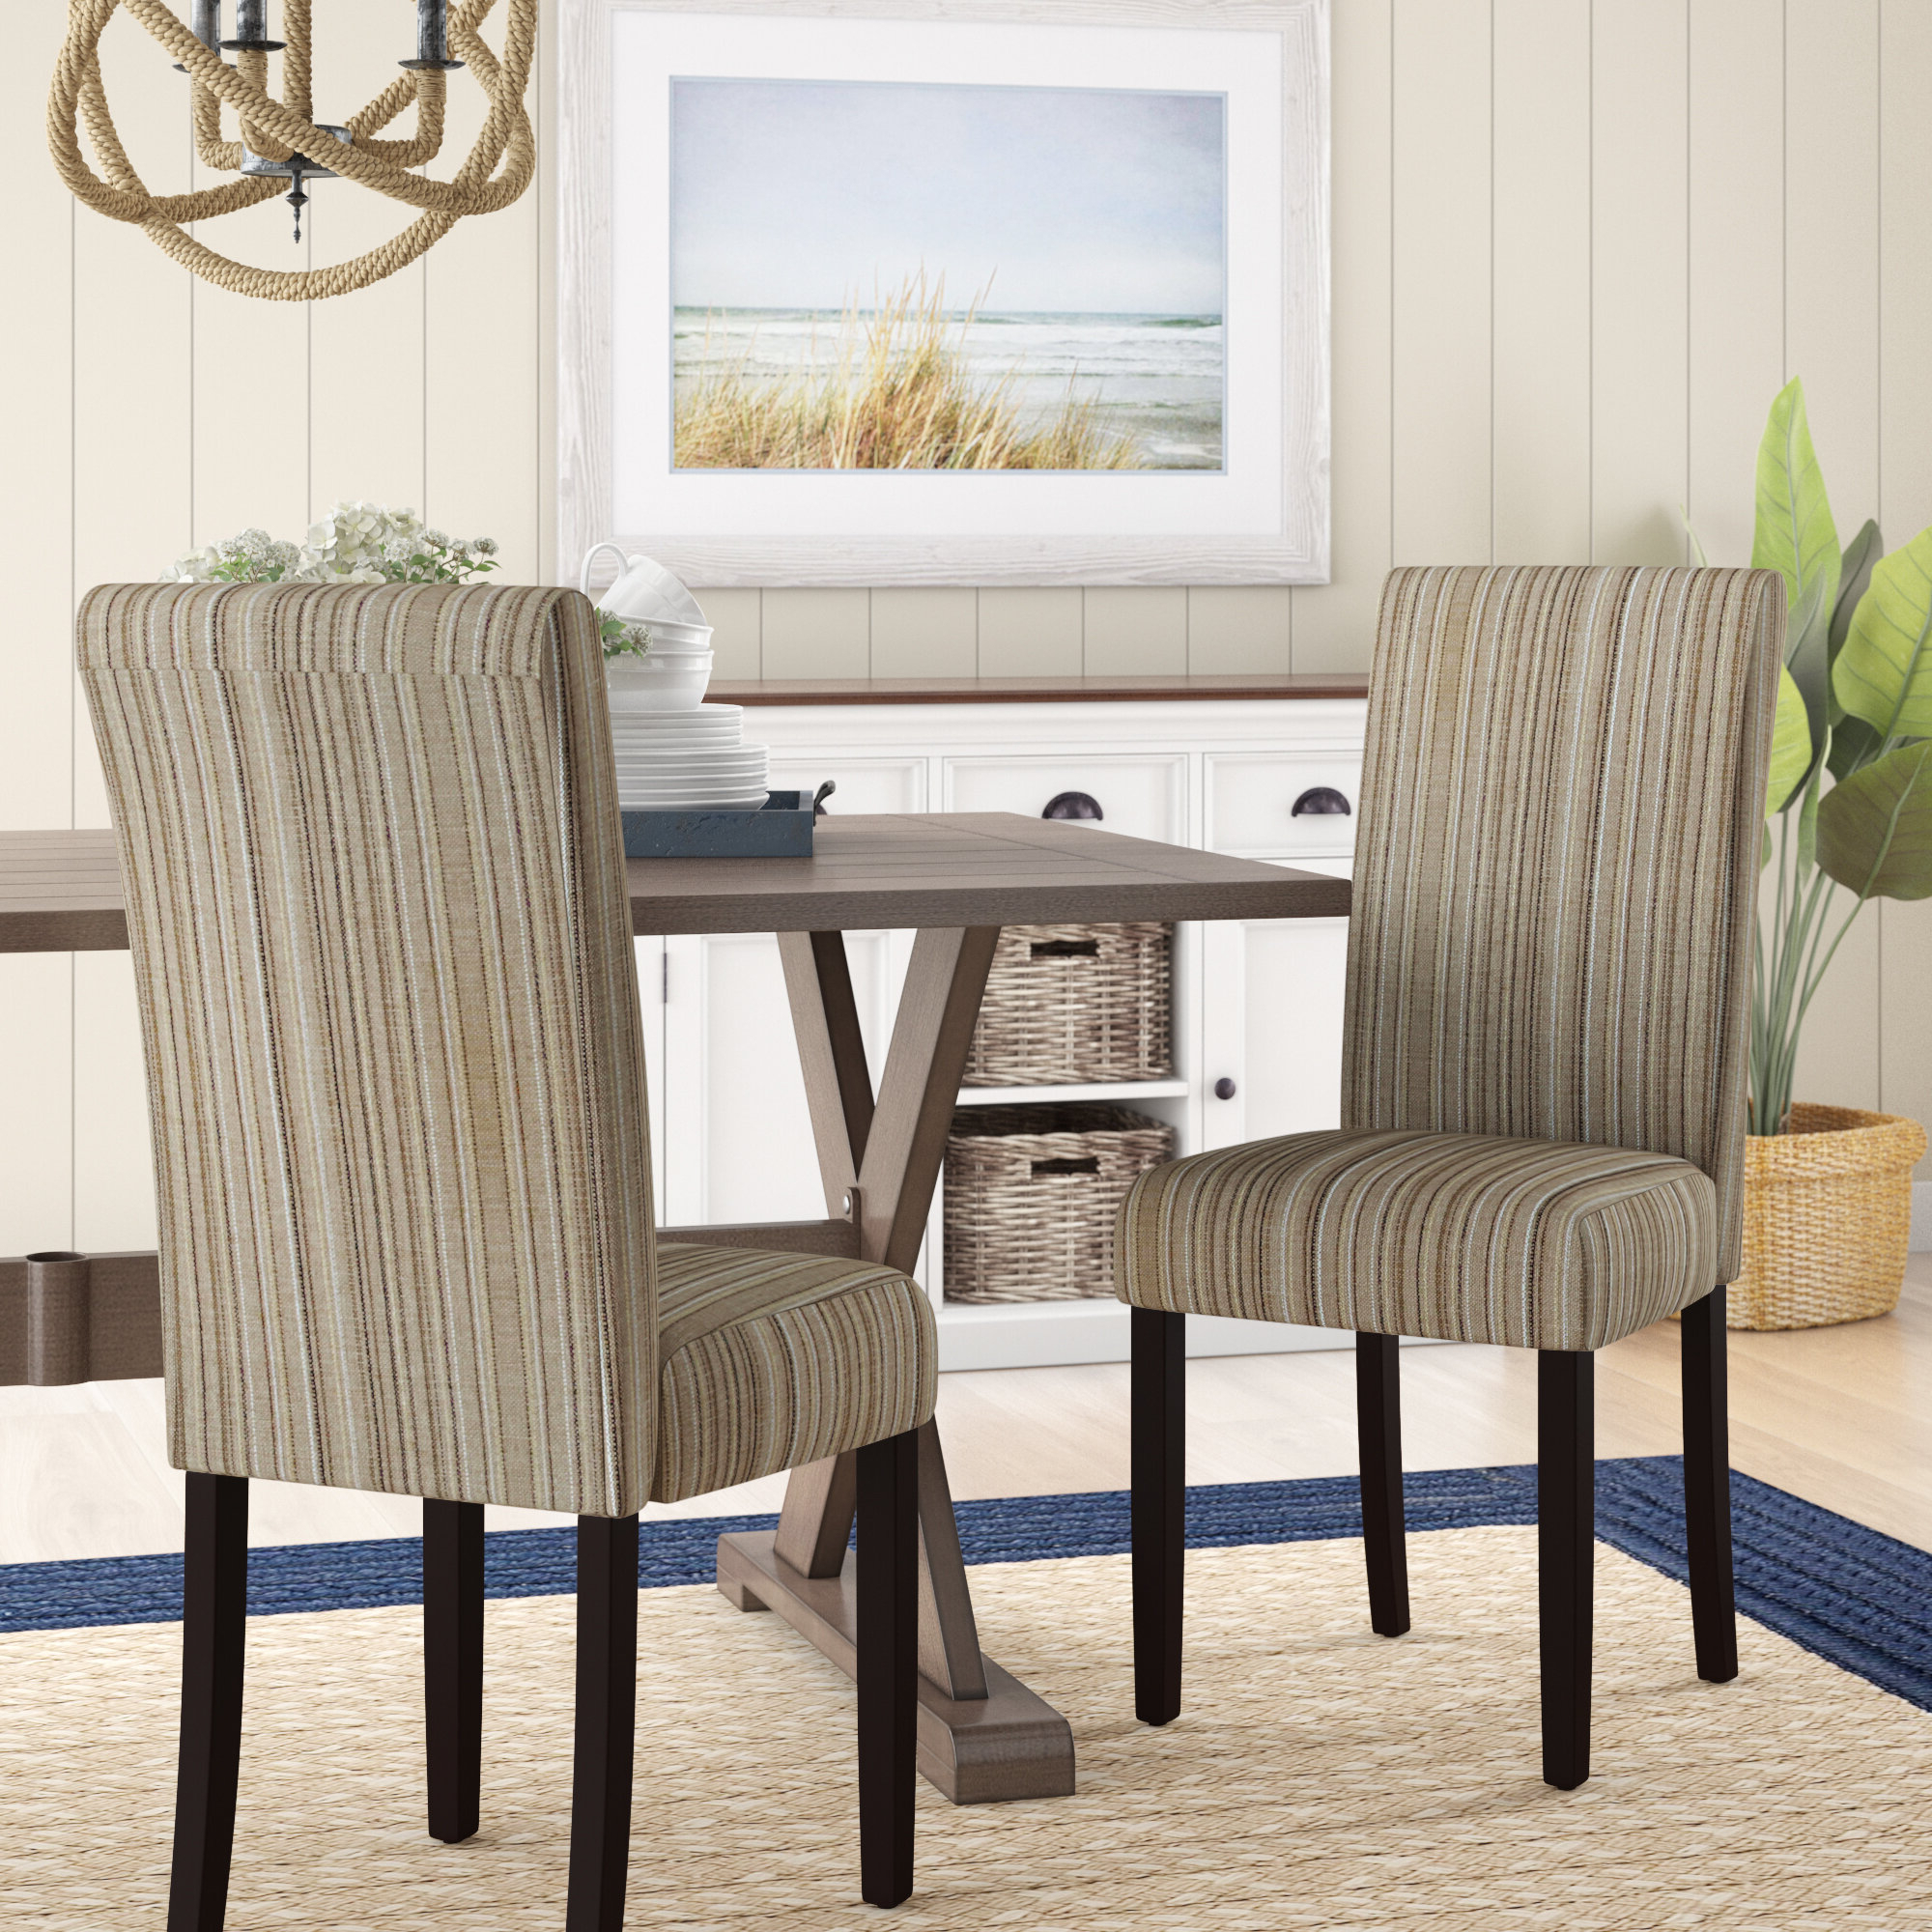 Most Popular Coastal Parsons Kitchen & Dining Chairs You'll Love In 2021 With Aime Upholstered Parsons Chairs In Beige (View 13 of 20)